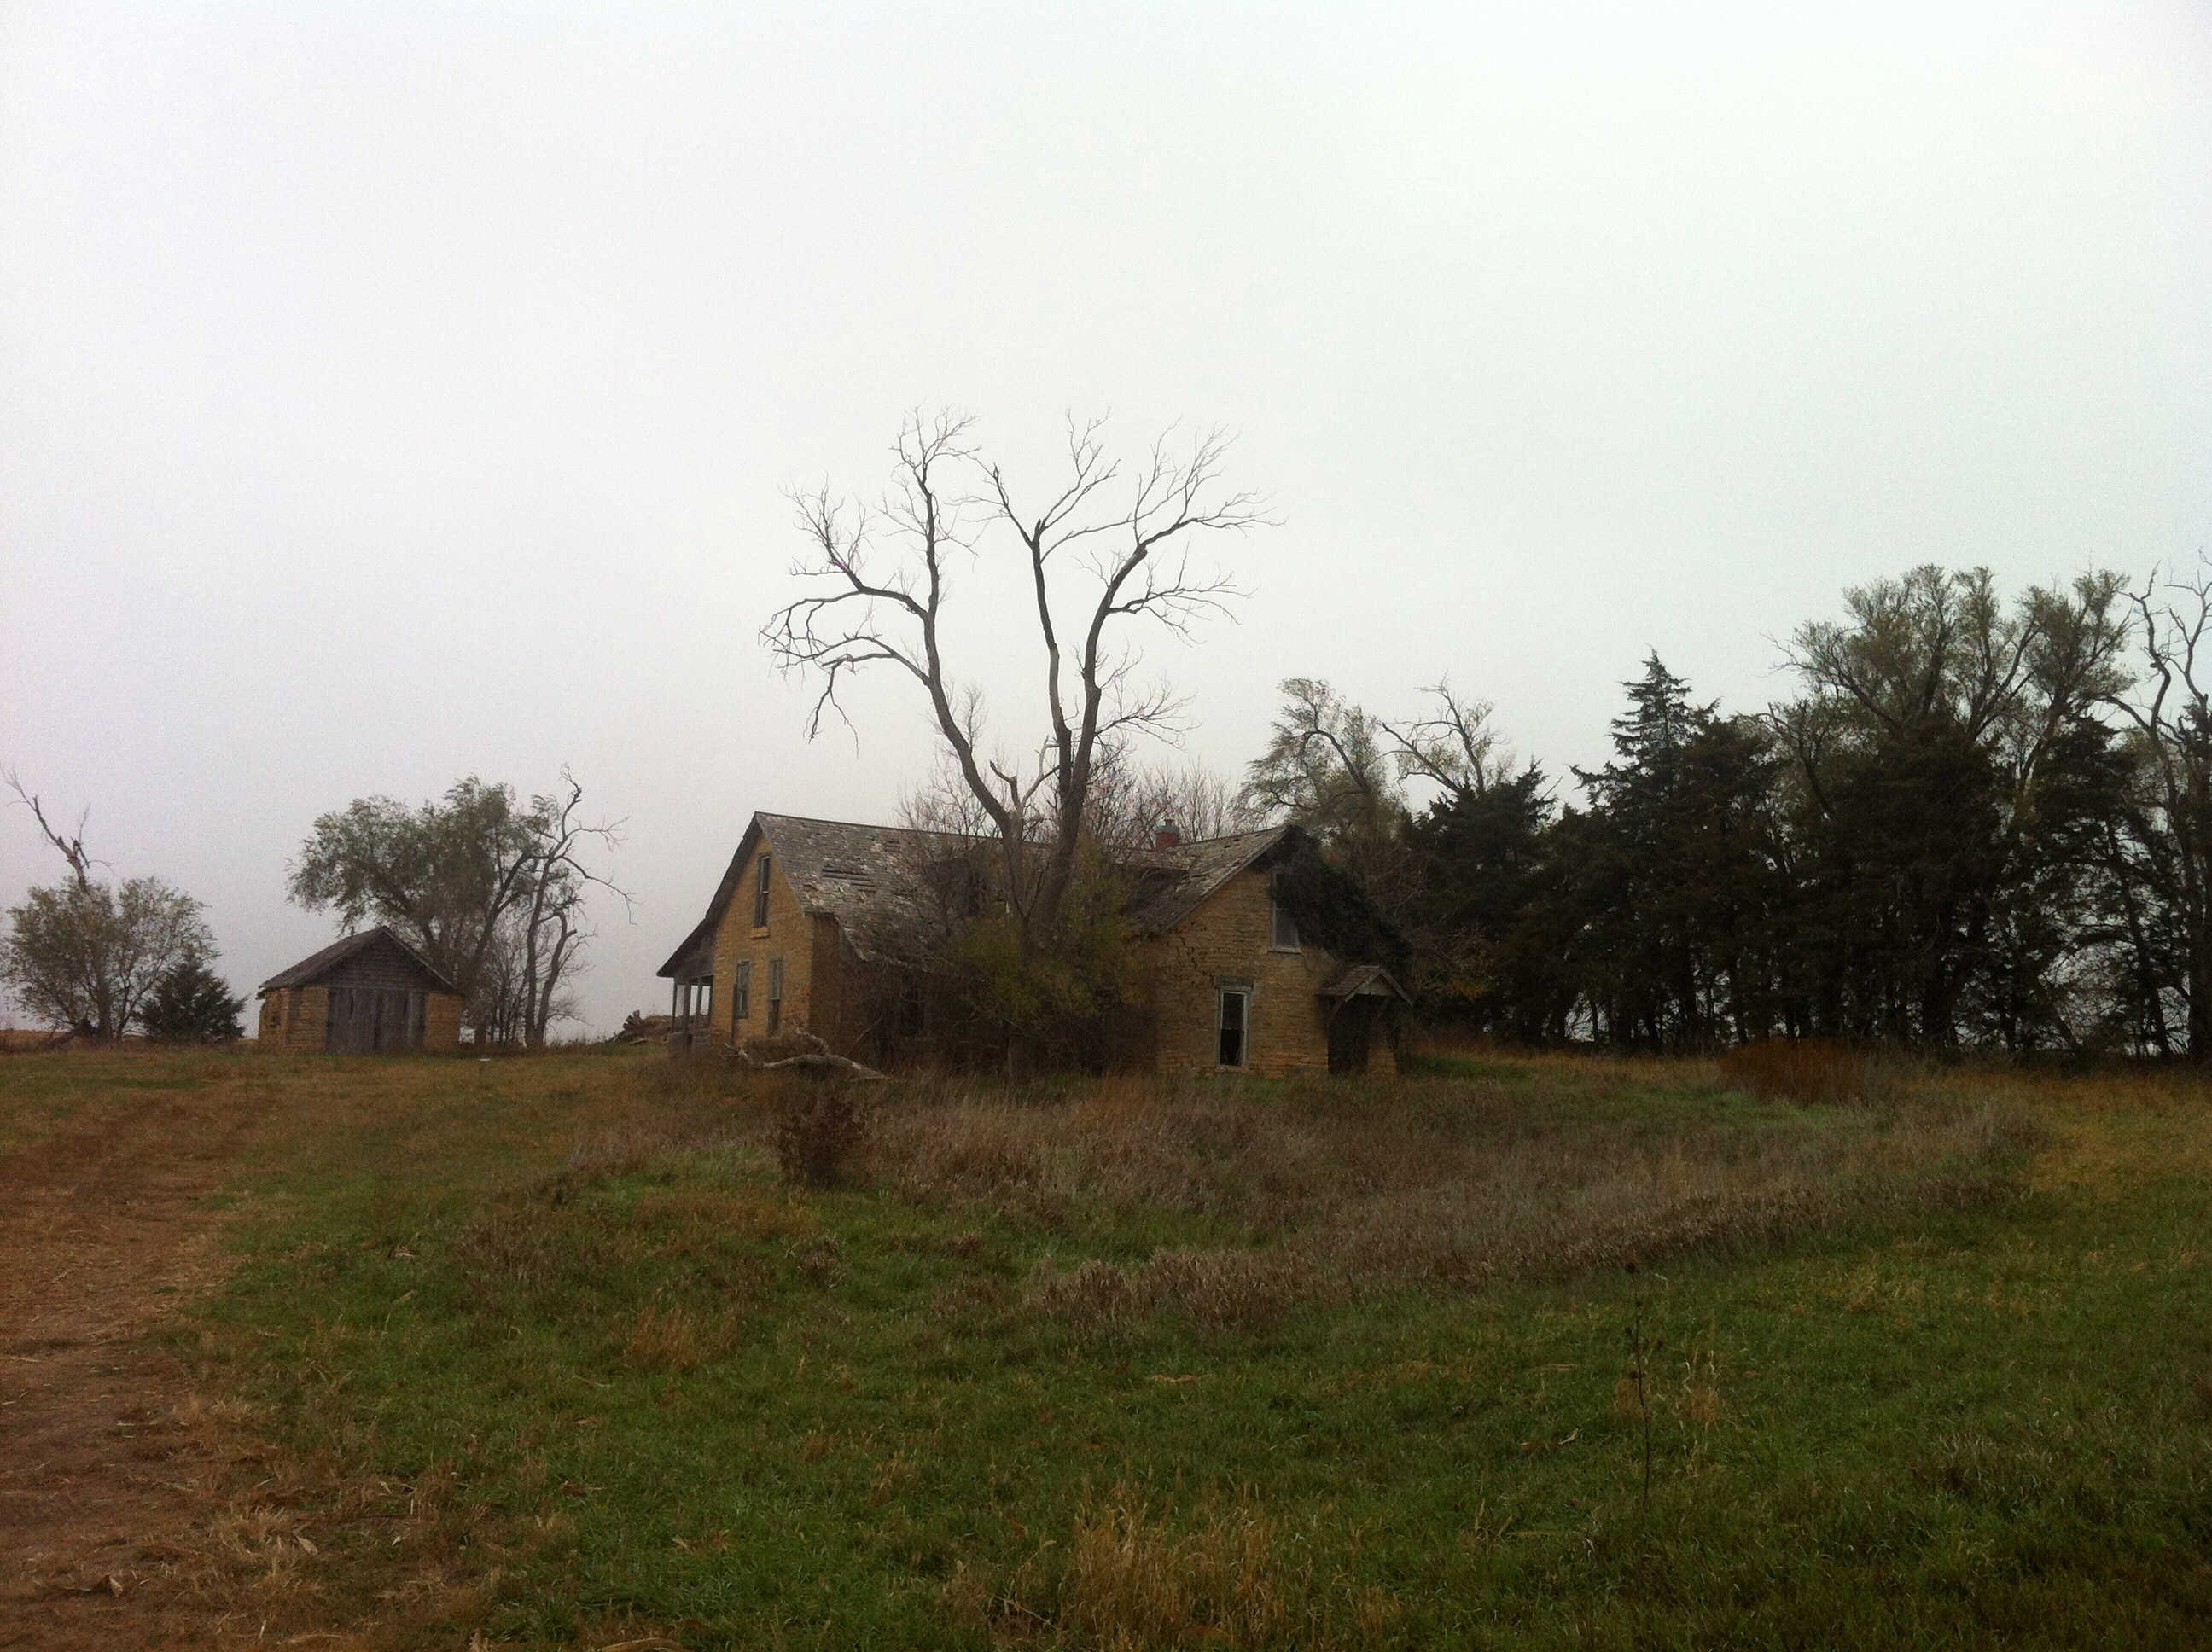 Kansas jewell county randall - Uploaded By Flickrmobile Flickriosapp Filter Nofilter